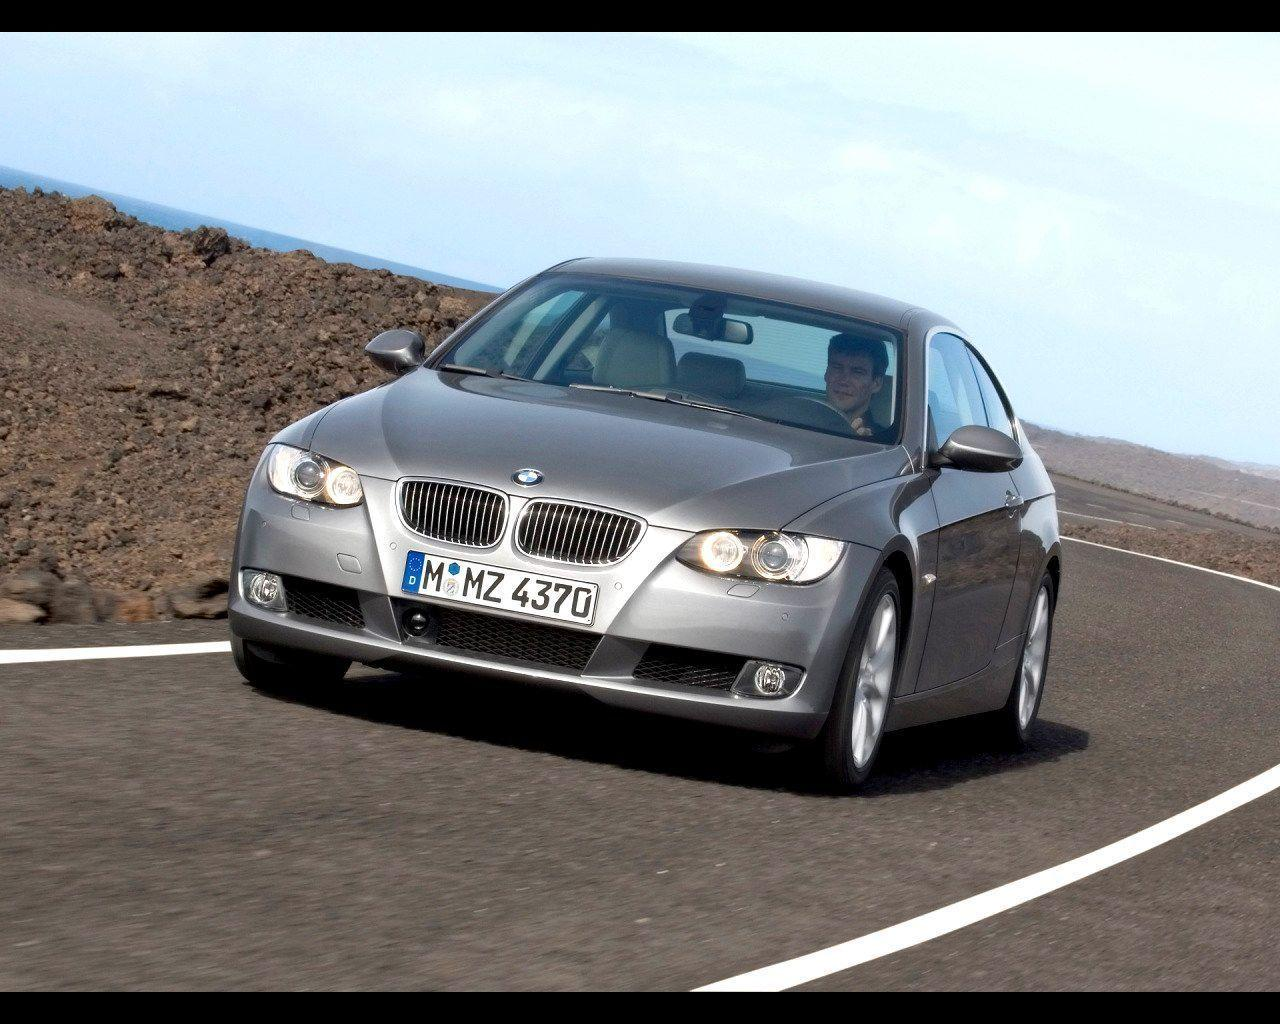 2007 BMW 335i Coupe Wallpaper 05 - 1280x1024